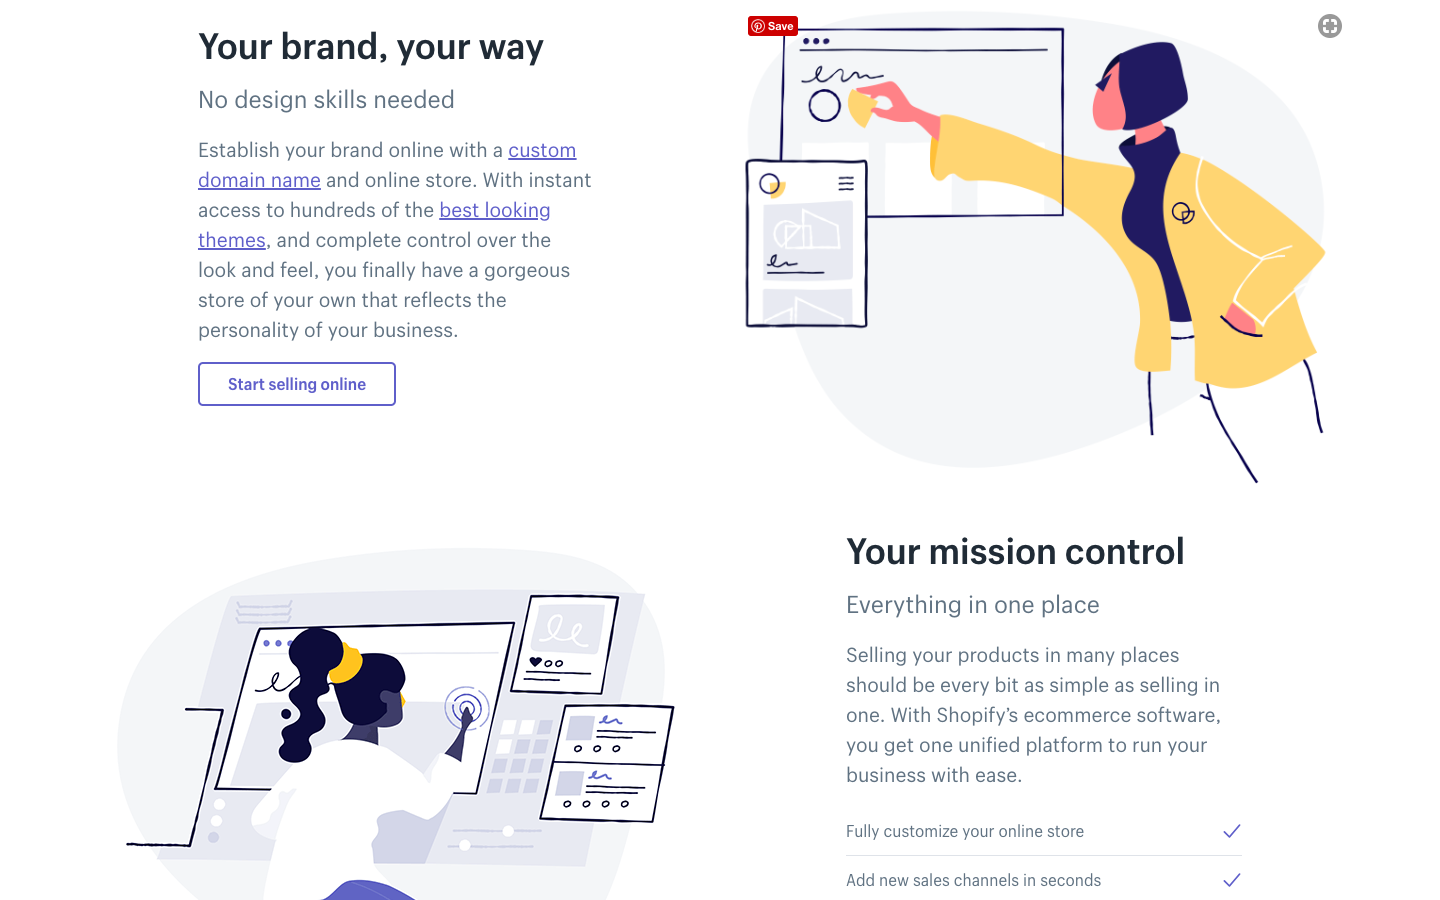 Shopify has made illustration a strong part of its brand